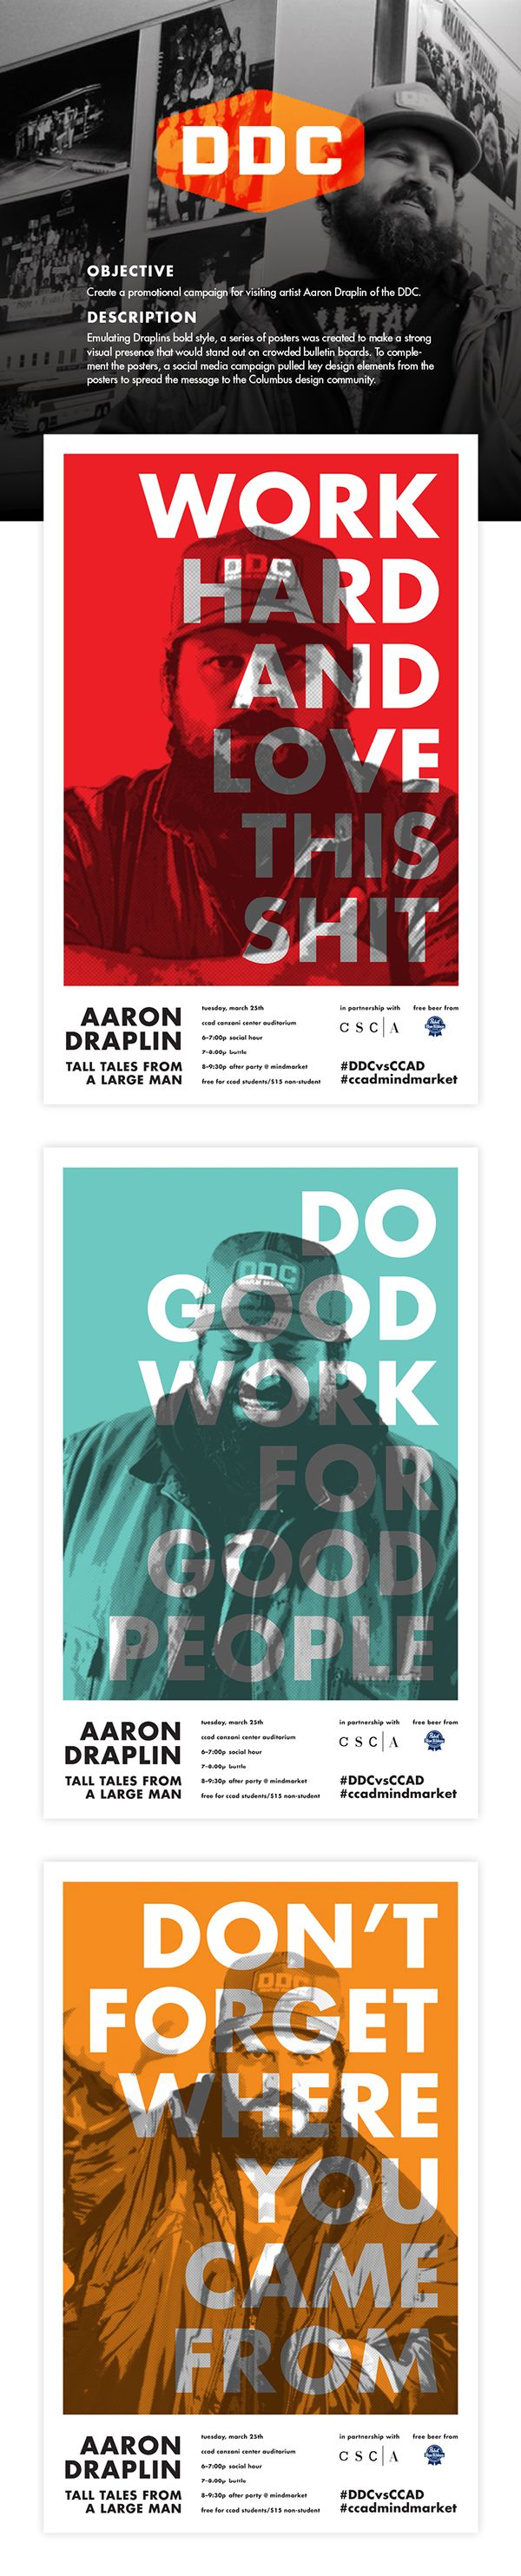 Aaron Draplin Promotions on Behance